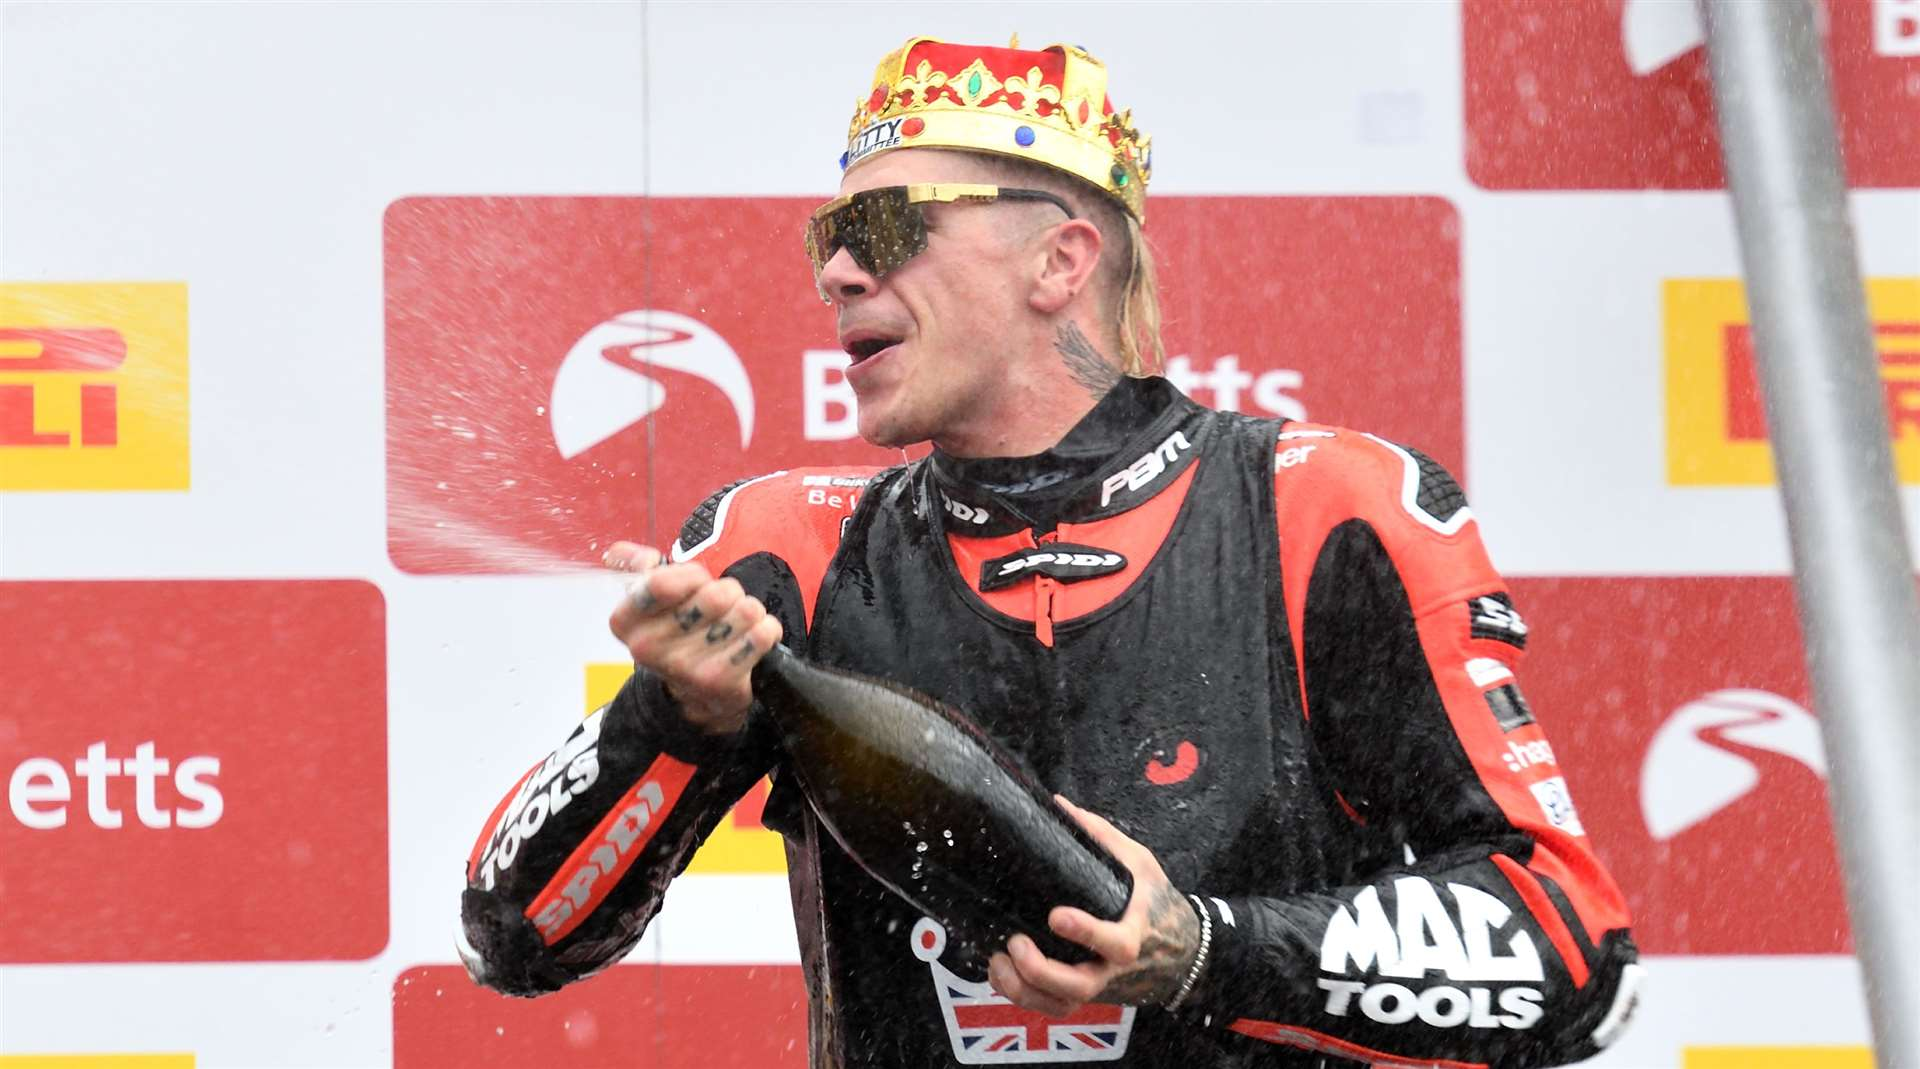 Scott Redding celebrates winning the BSB Championship. Picture: Simon Hildrew